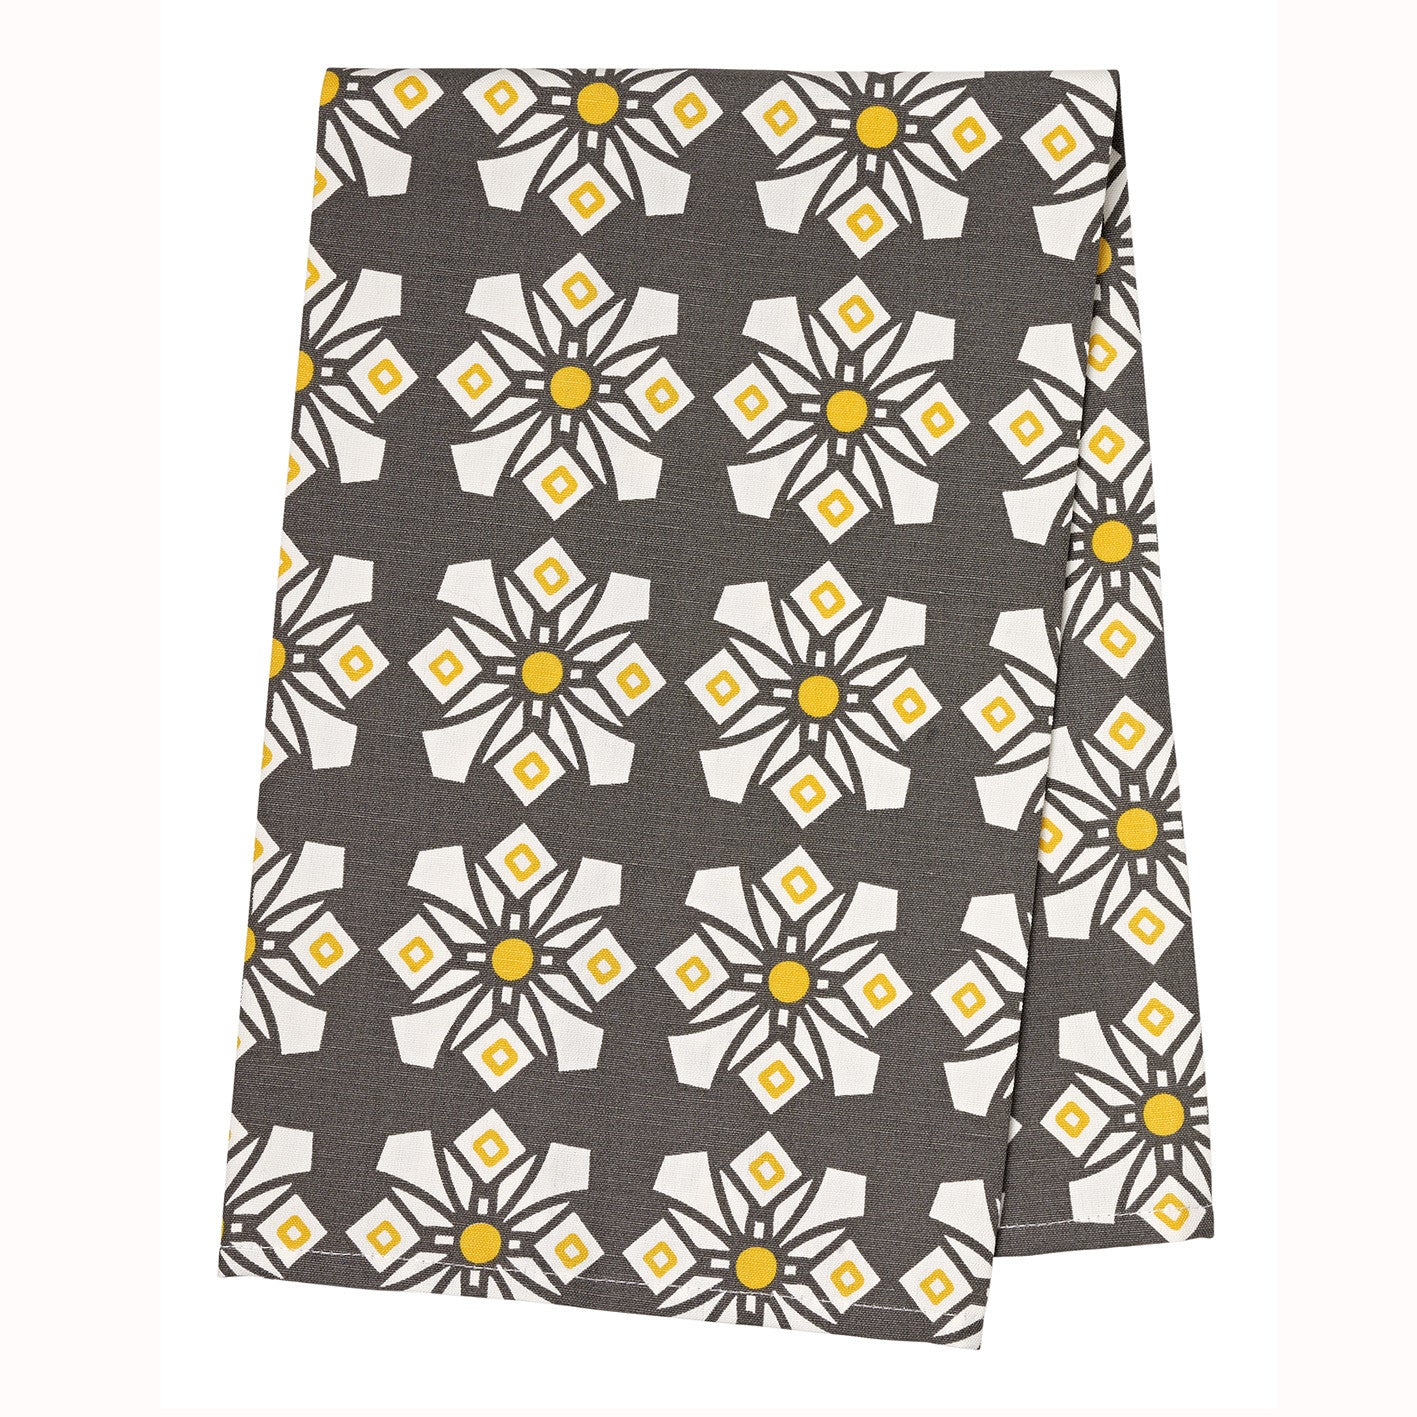 Dorothy Tea Towel - Stone Grey